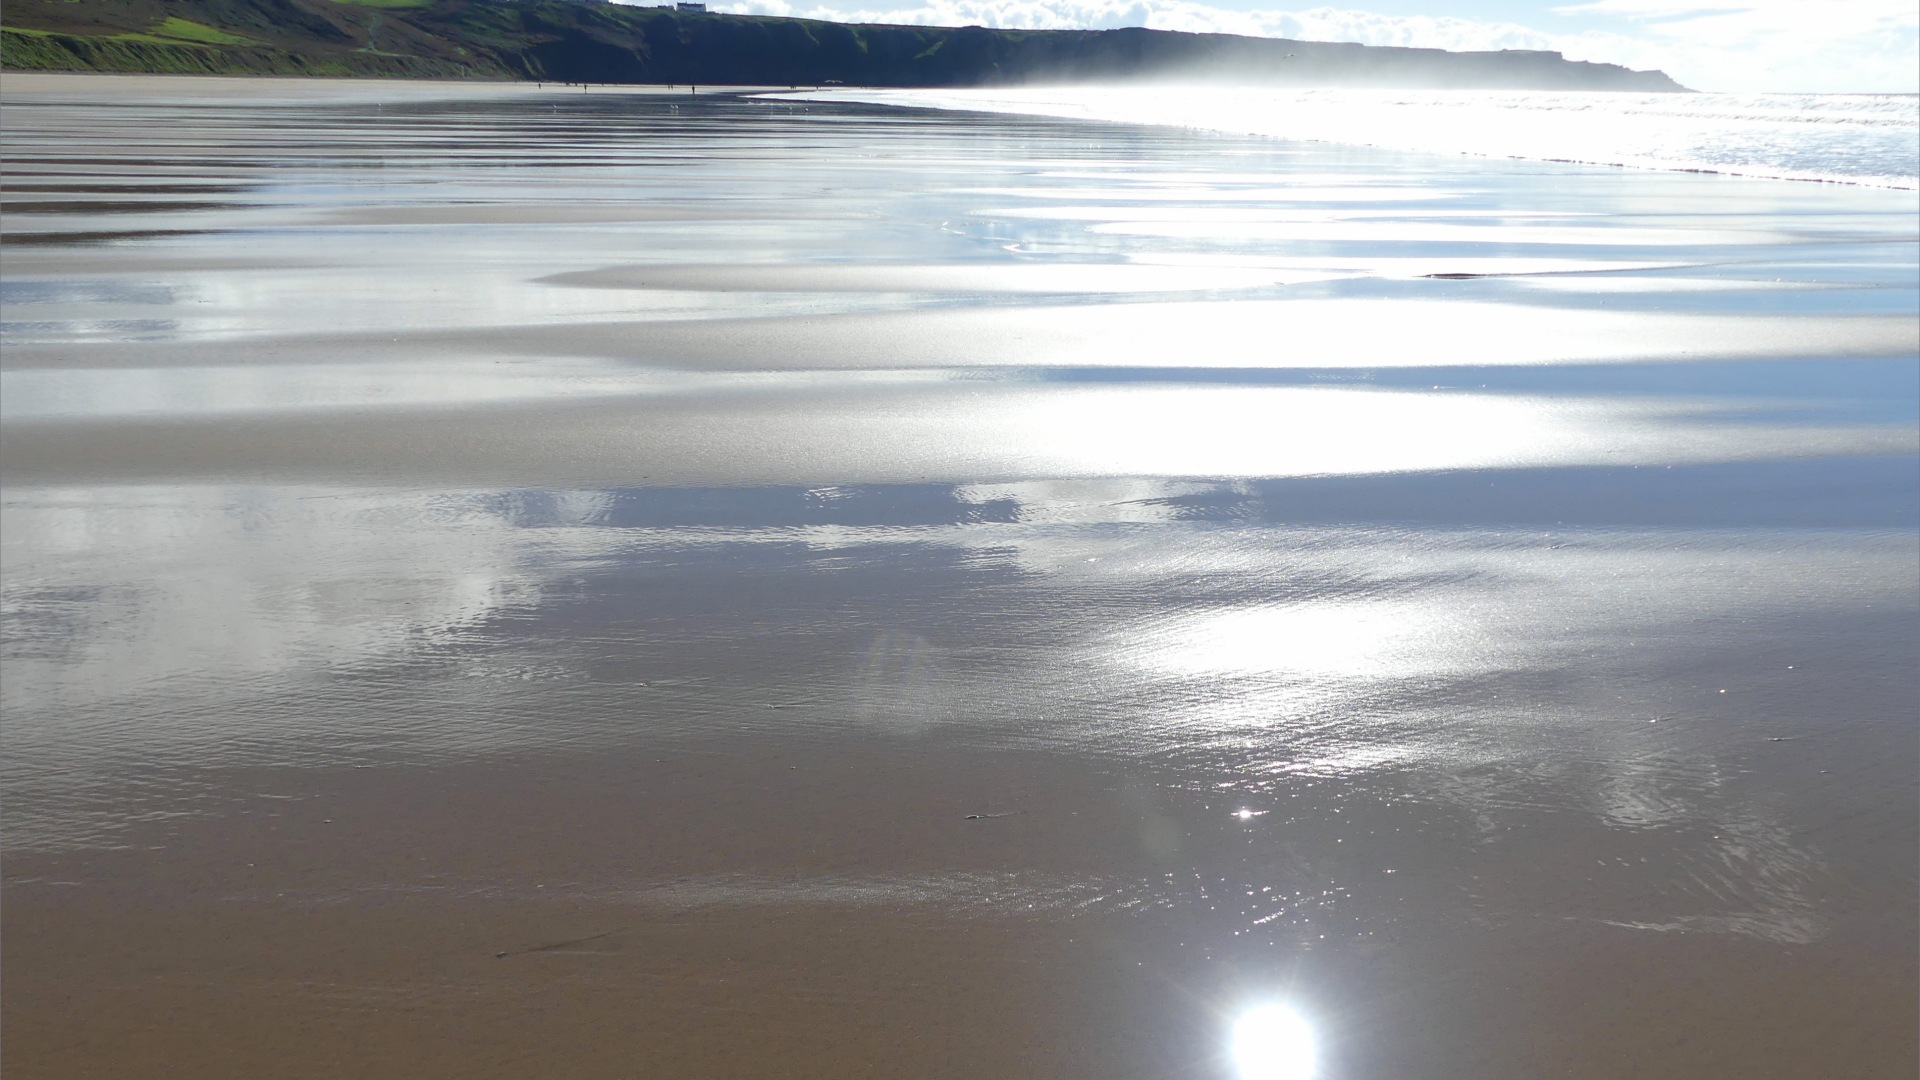 Wet sand gleaming in sunlight